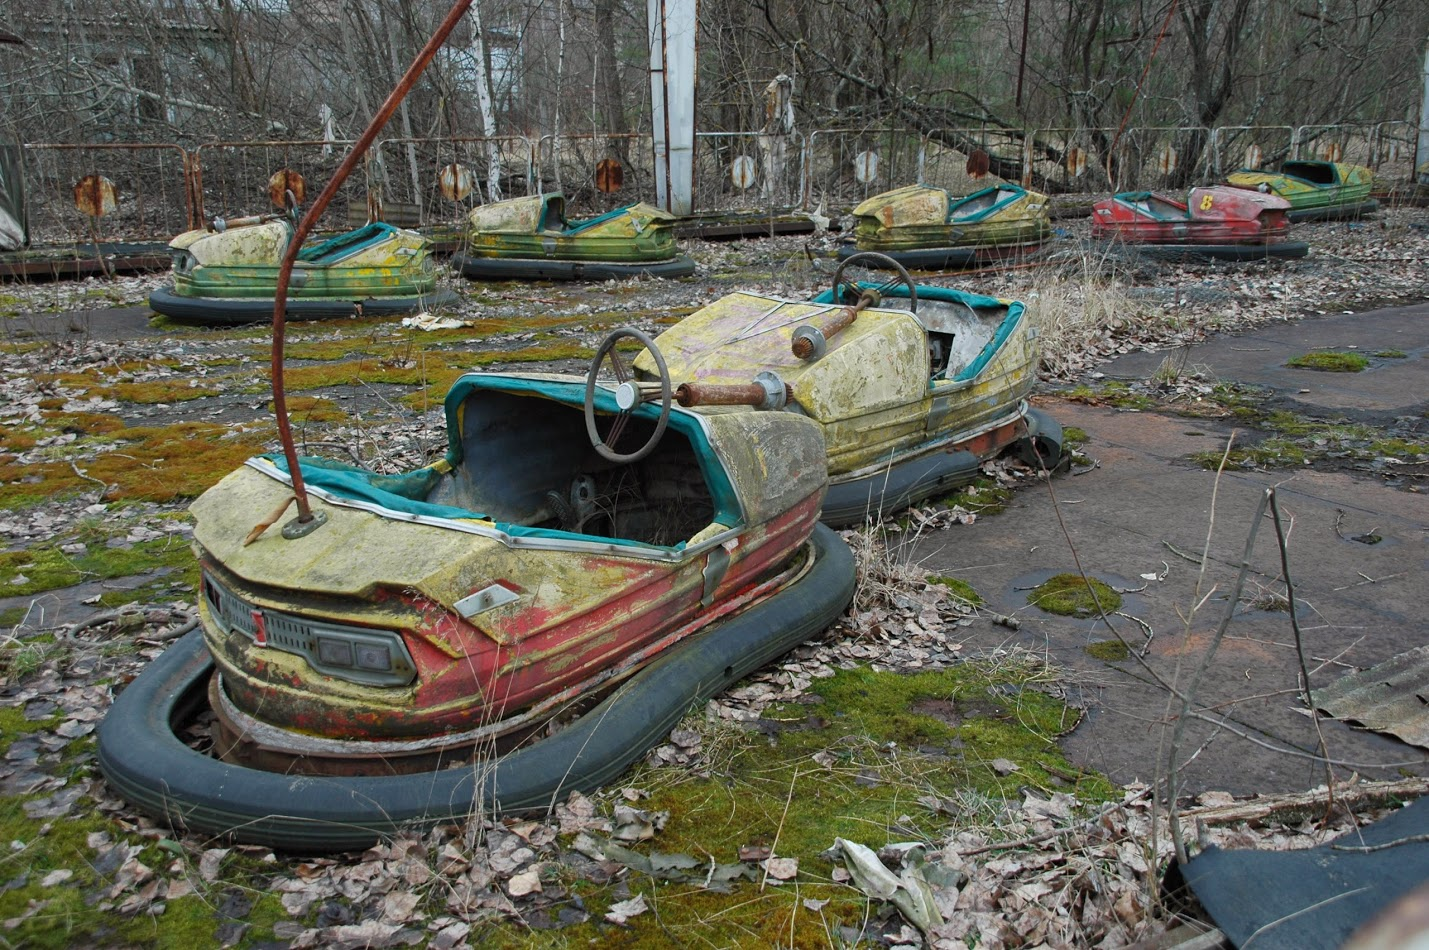 A rusting ride for children in the highly radioactive abandoned amusement park in Pripyat. (Steve Herman/VOA)